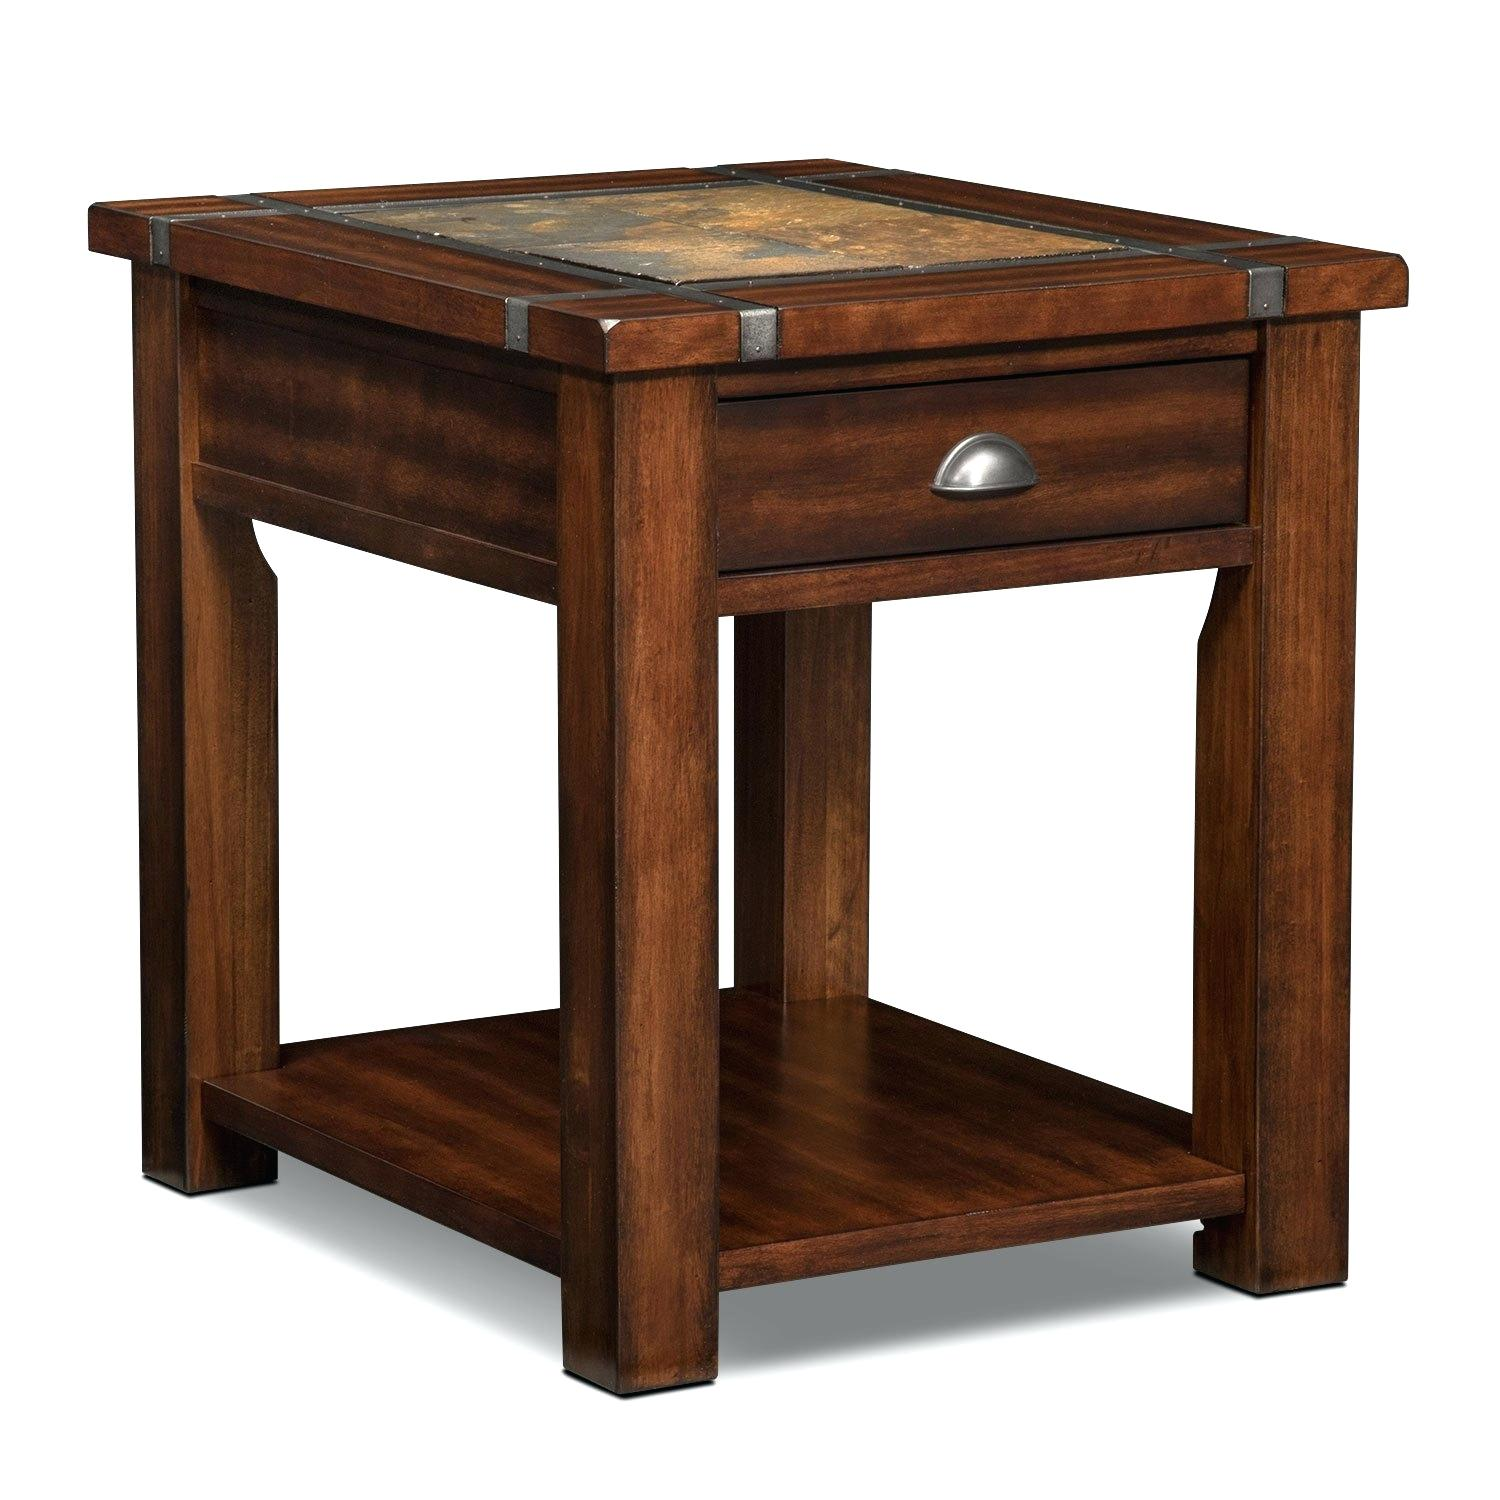 end tables cherry table tablets wood pub slate ridge value city furniture and mattresses accent occasional oak chairs coffee frosted glass luggage living room colors with brown